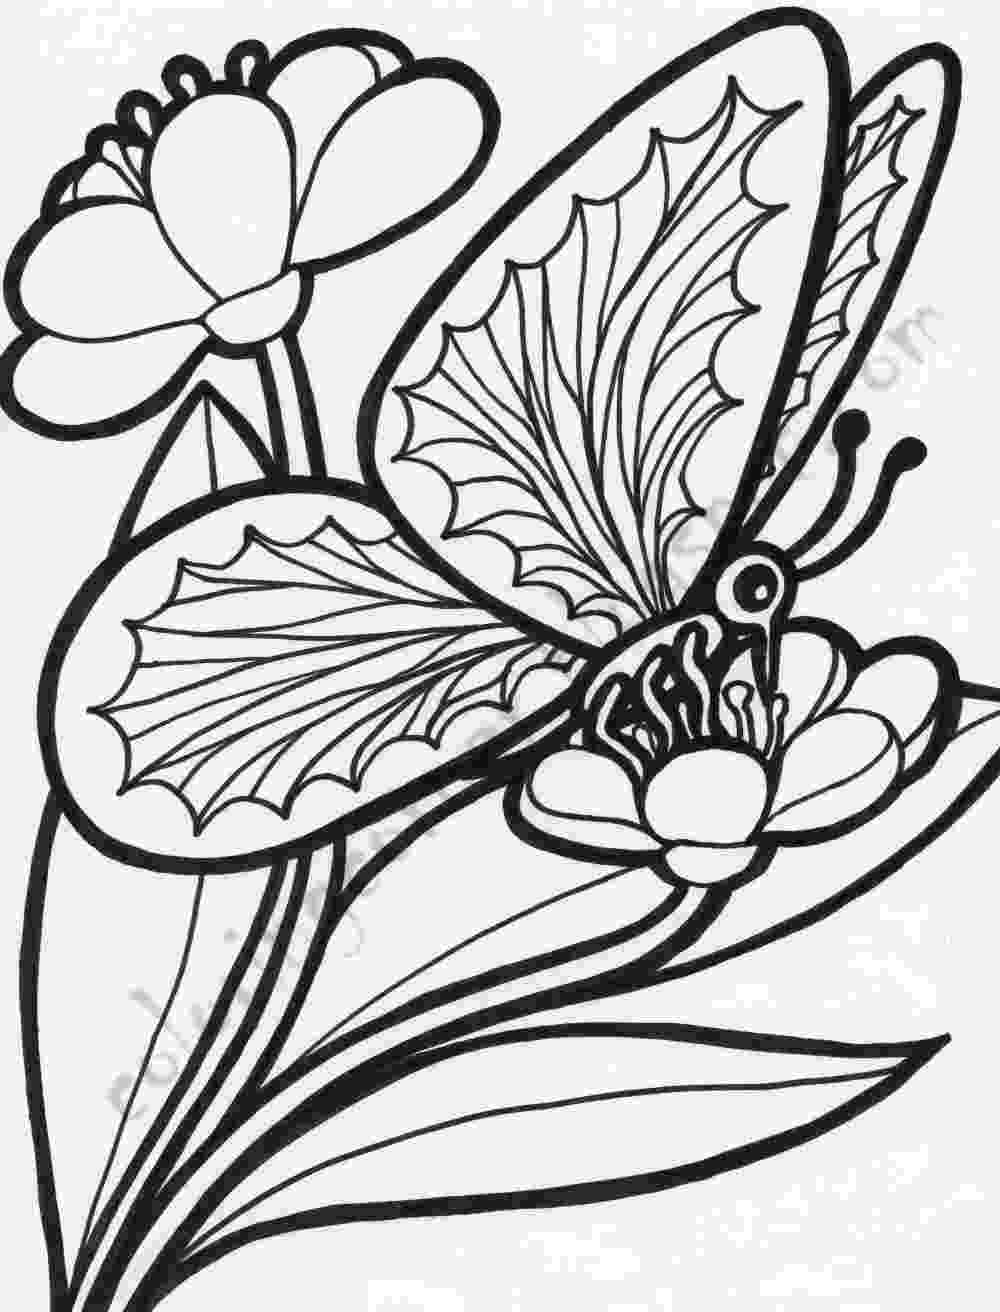 printable flower coloring pages free printable flower coloring pages for kids best flower coloring printable pages 1 1